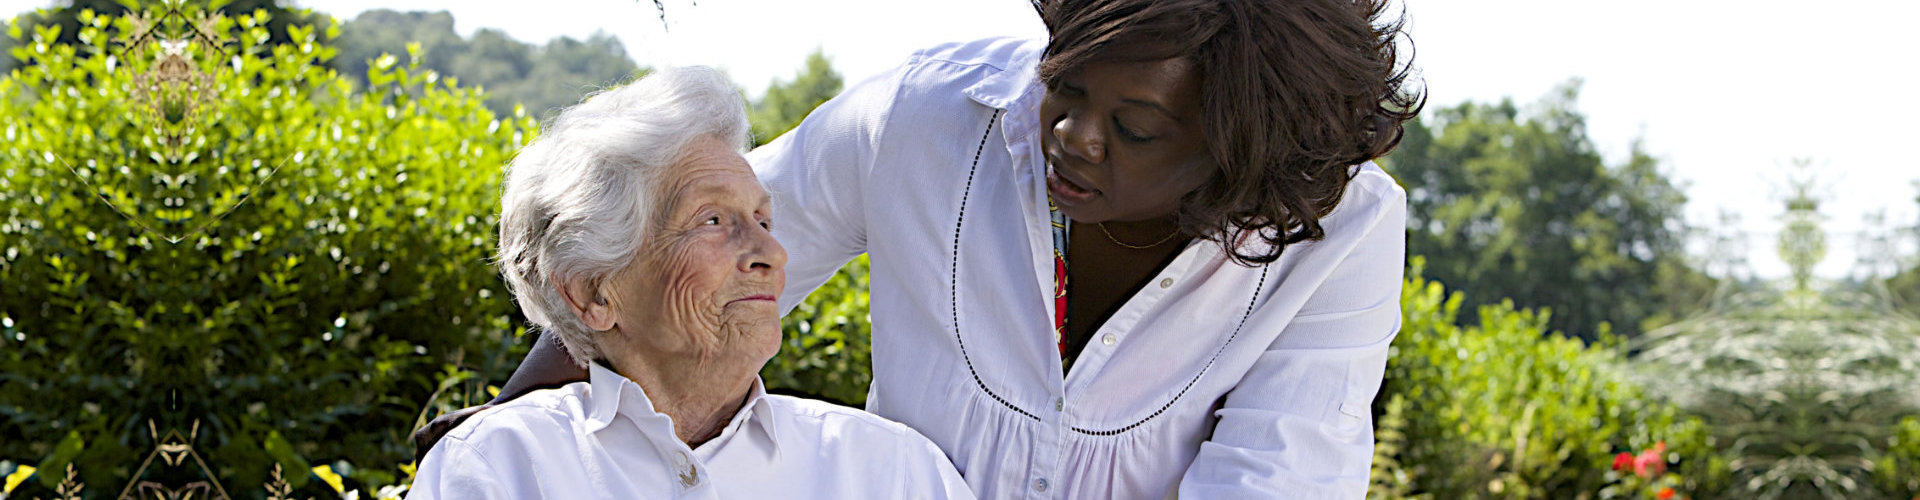 caregiver and senior woman looking at each other